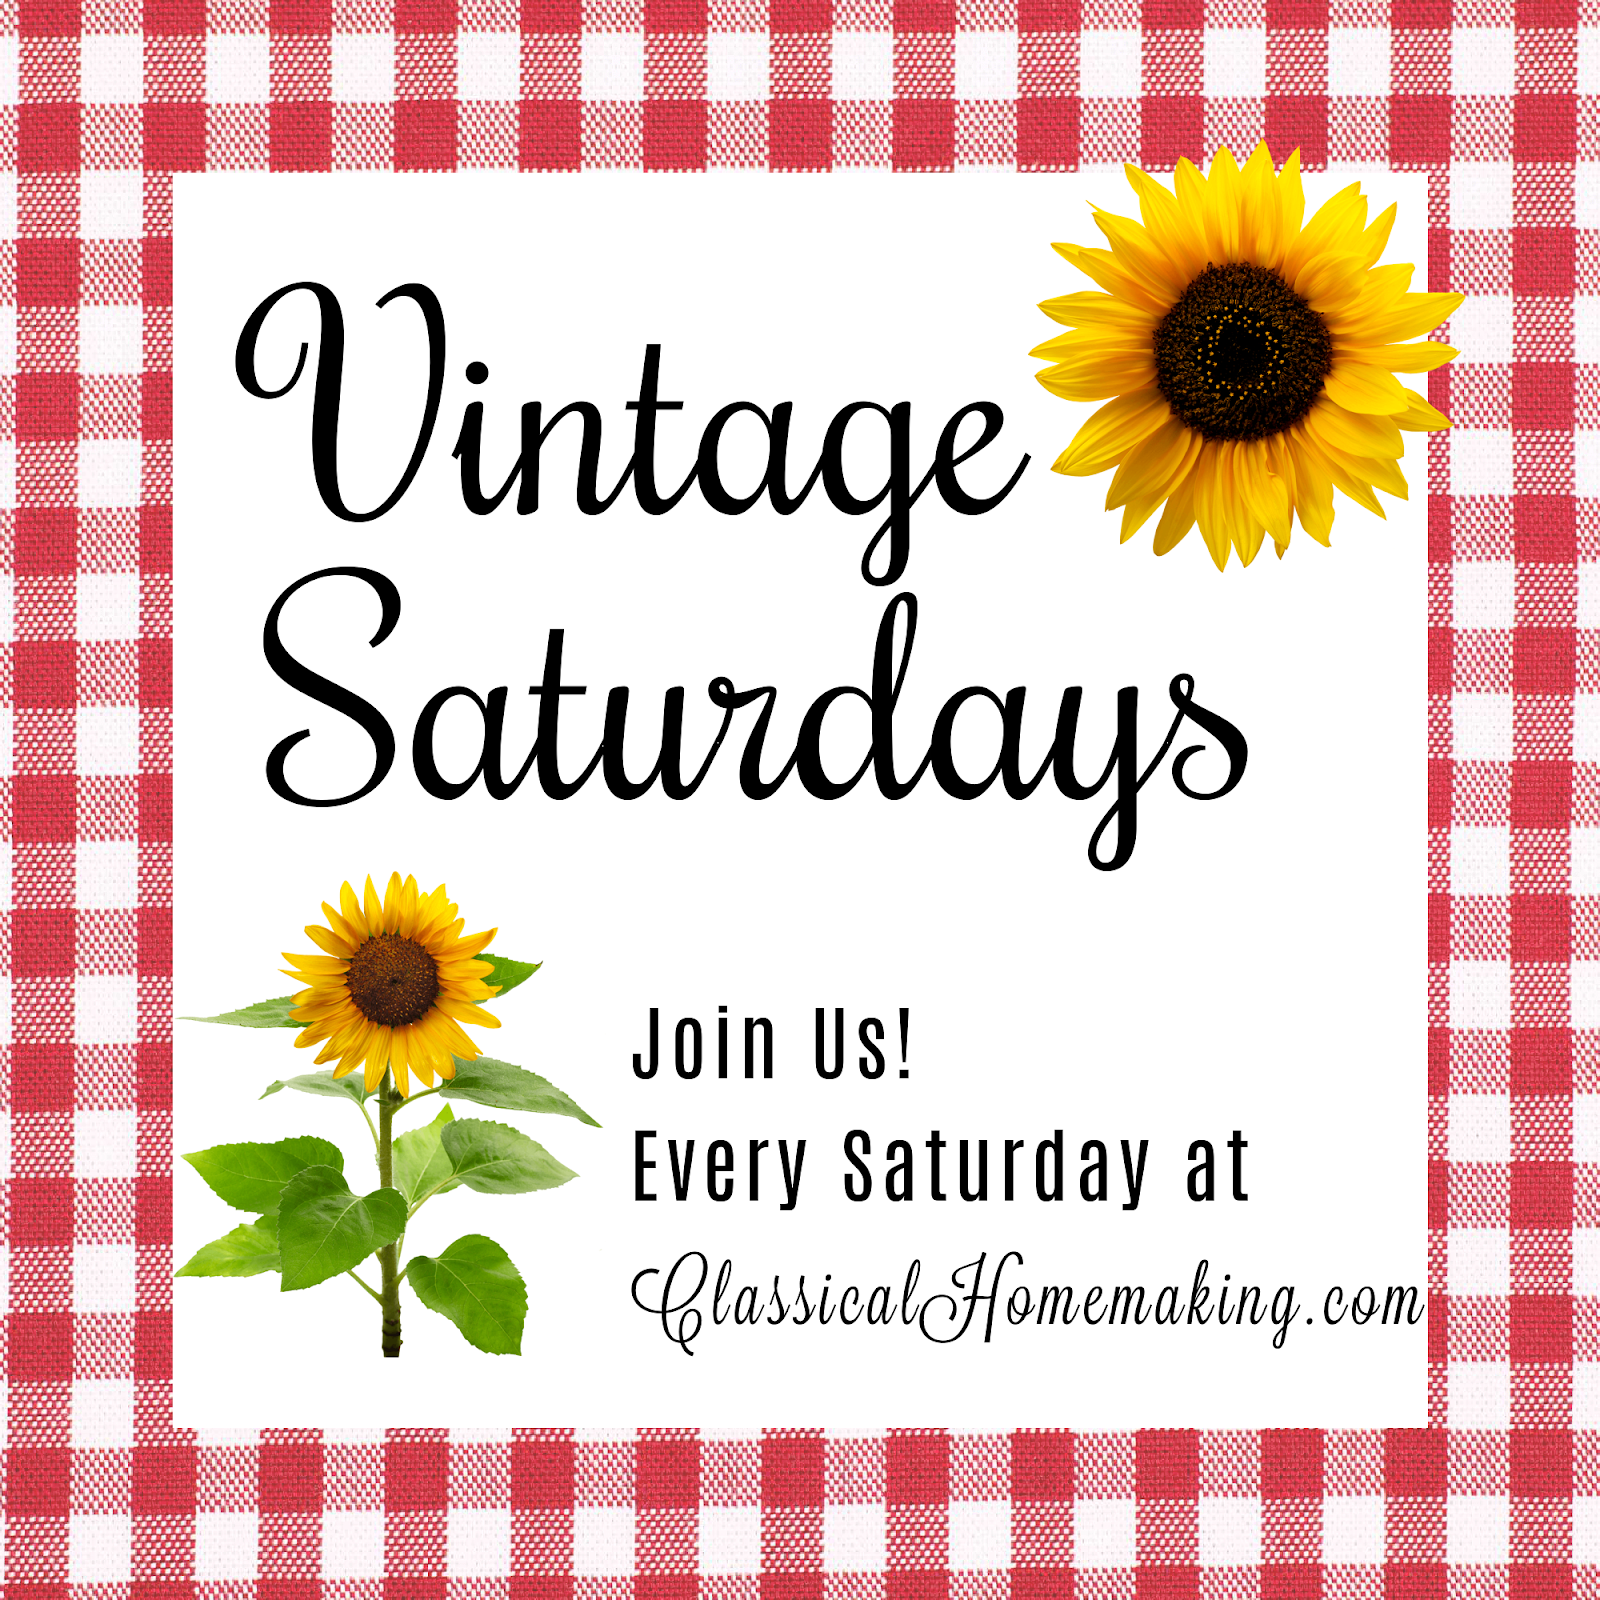 Join Us For Vintage Saturdays!